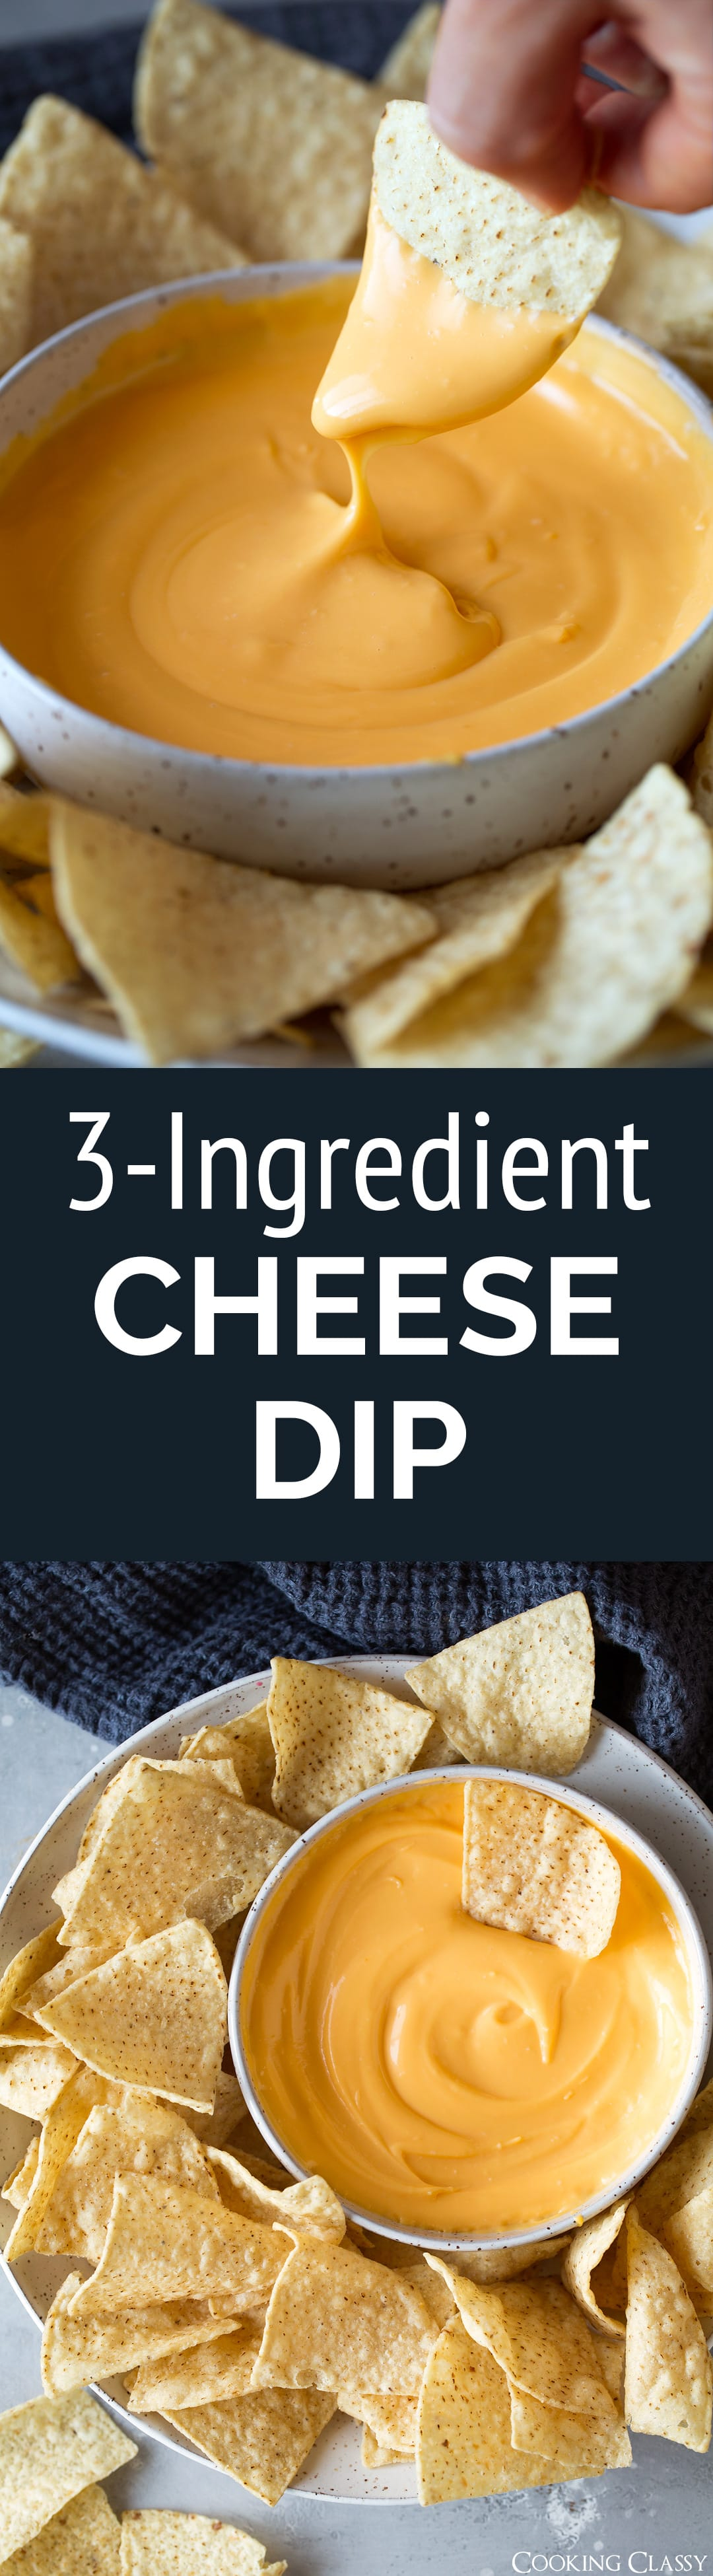 3 Ingredient Cheese Dip - A super easy, totally delicious cheddar cheese dip made with real ingredients! Perfect for parties or game day. #cheesedip #nachocheesedip #queso #easyrecipe